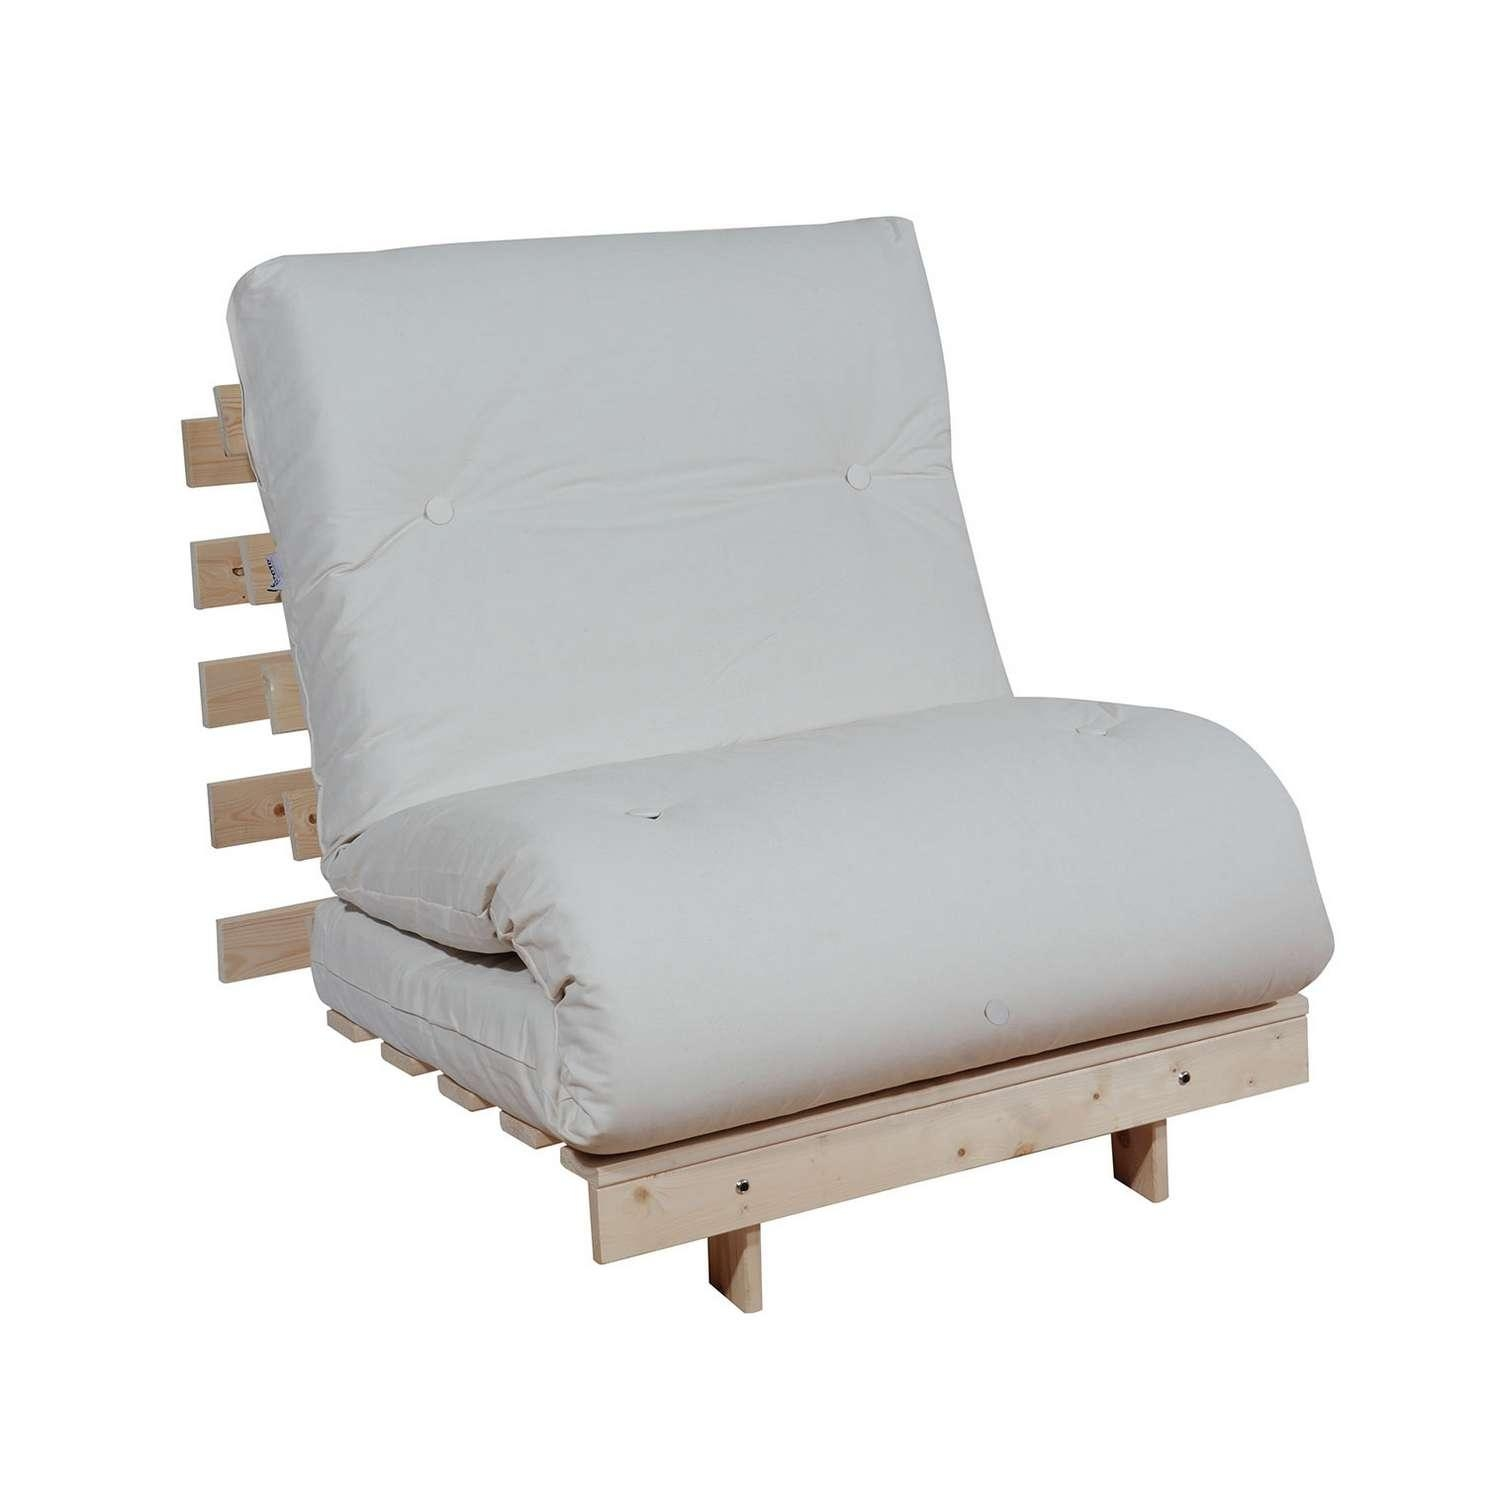 Awesome Futon Single Chair Bed Single Chair Bed Ebay | Furniture Ideas With Regard To Cheap Single Sofa Bed Chairs (Image 5 of 20)